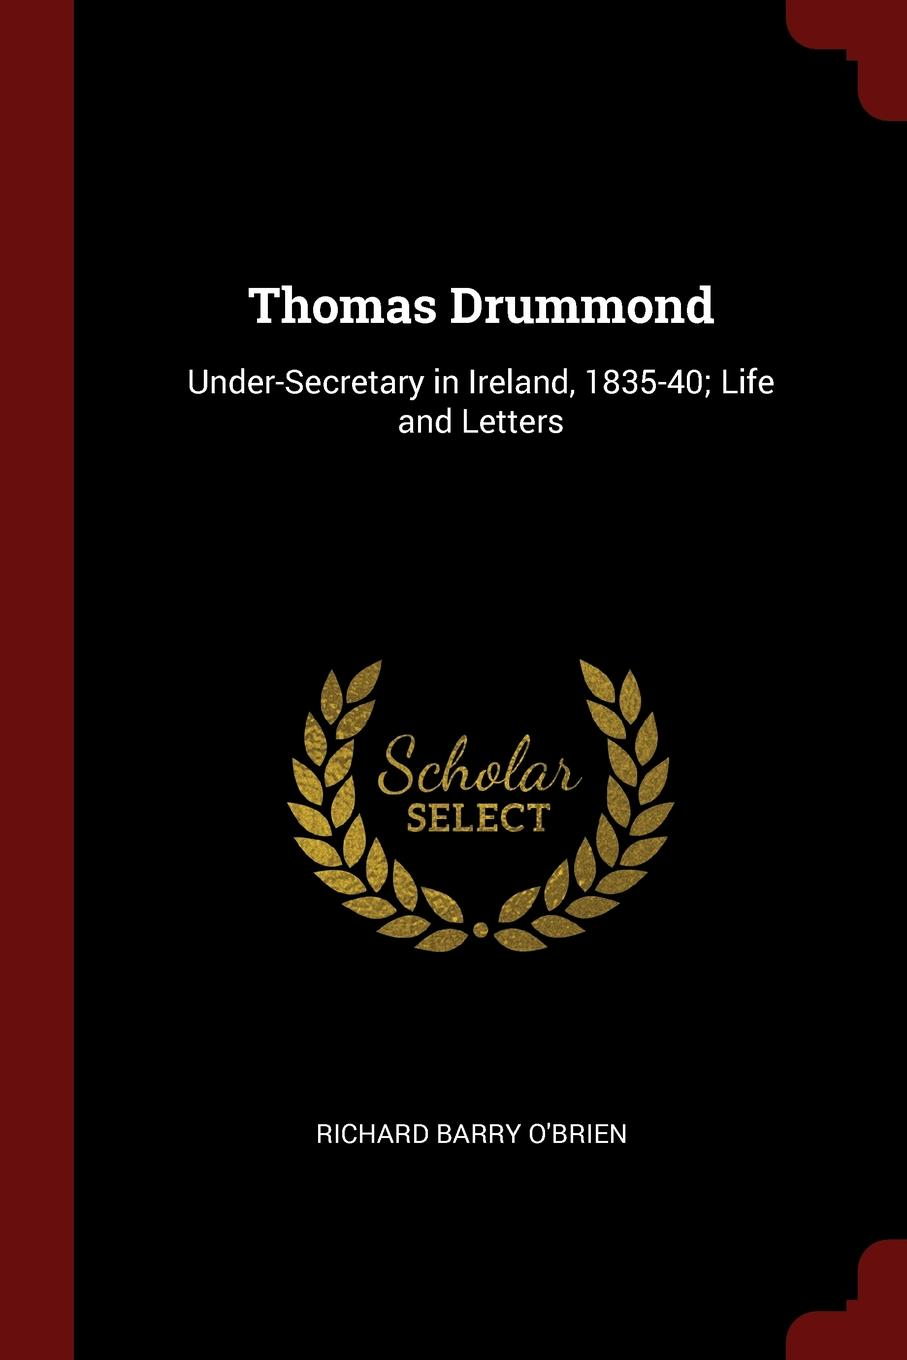 Thomas Drummond. Under-Secretary in Ireland, 1835-40; Life and Letters. Richard Barry O`Brien